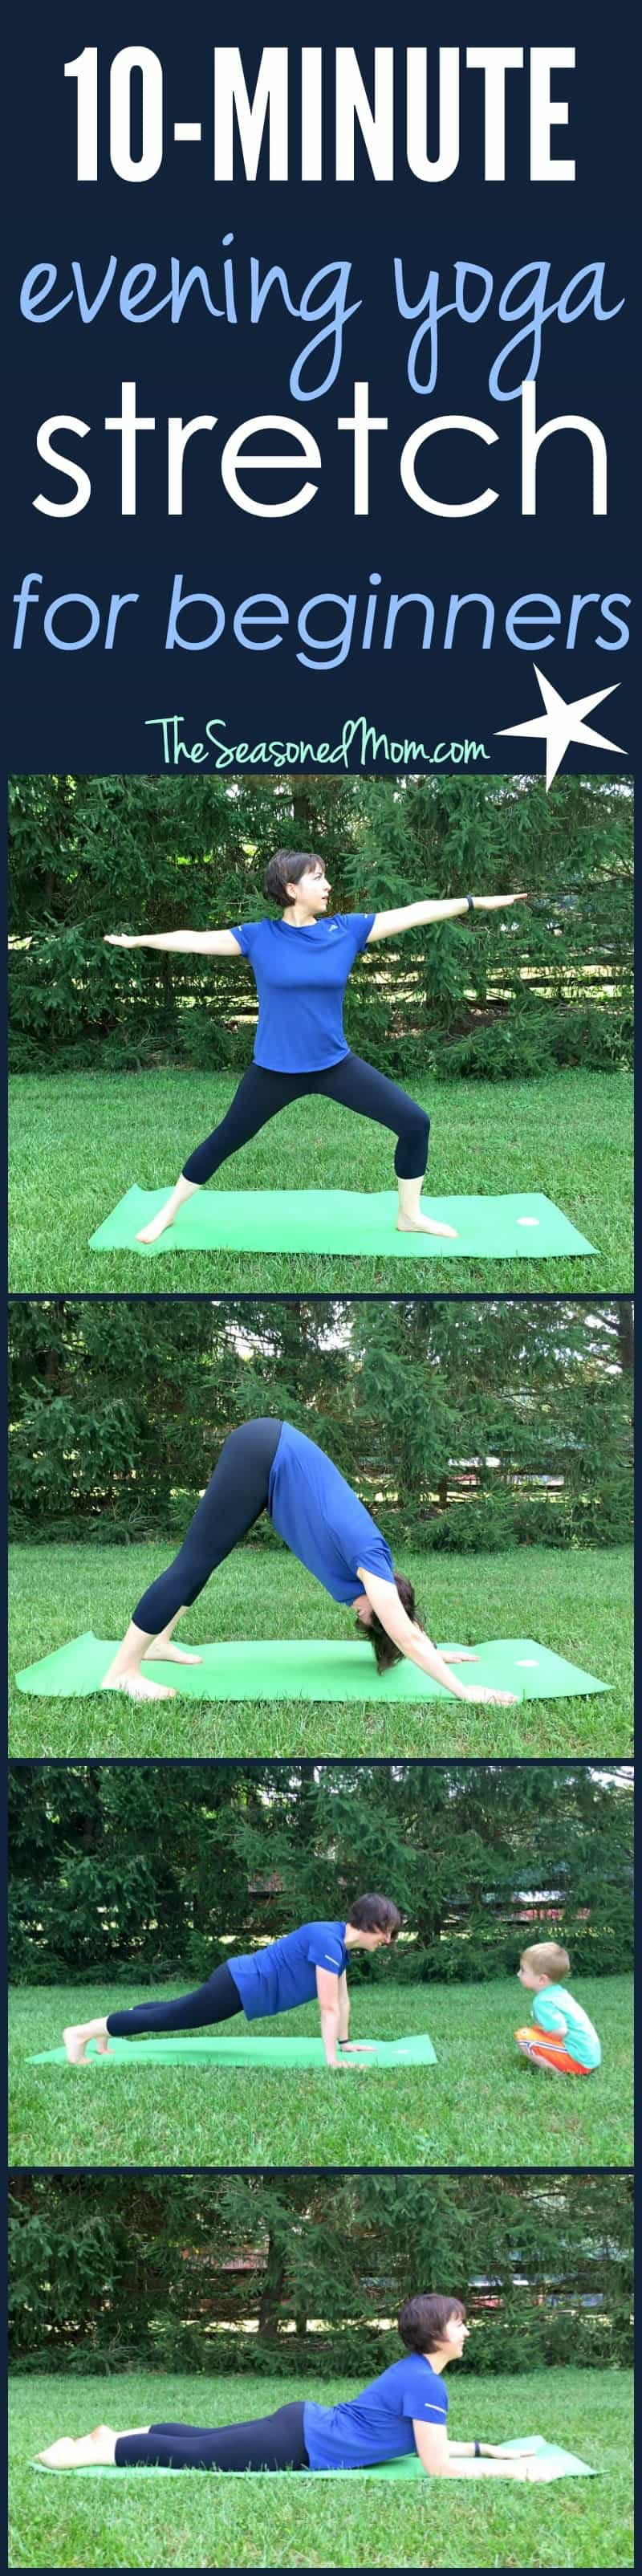 If you're looking to improve your flexibility, recover from a tough workout,